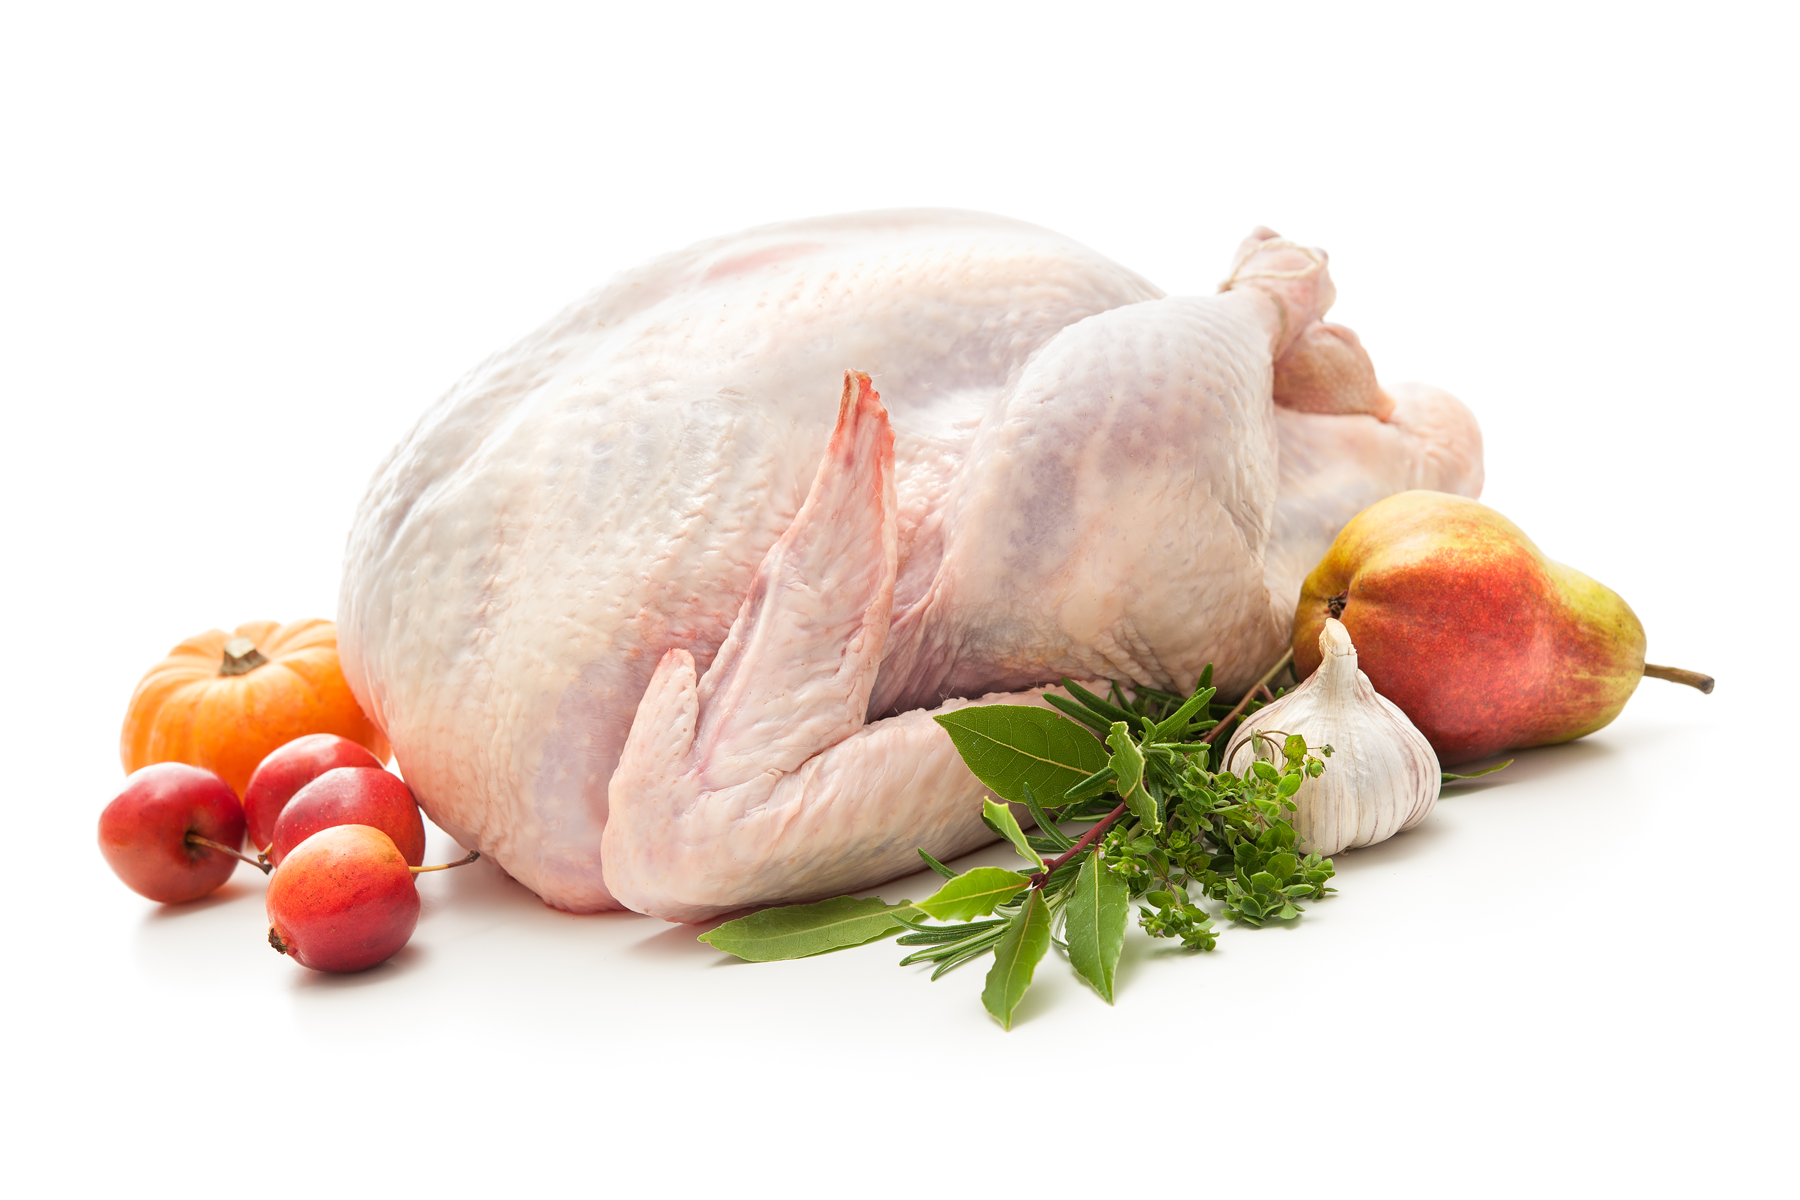 Whole Turkey, Glatt kosher